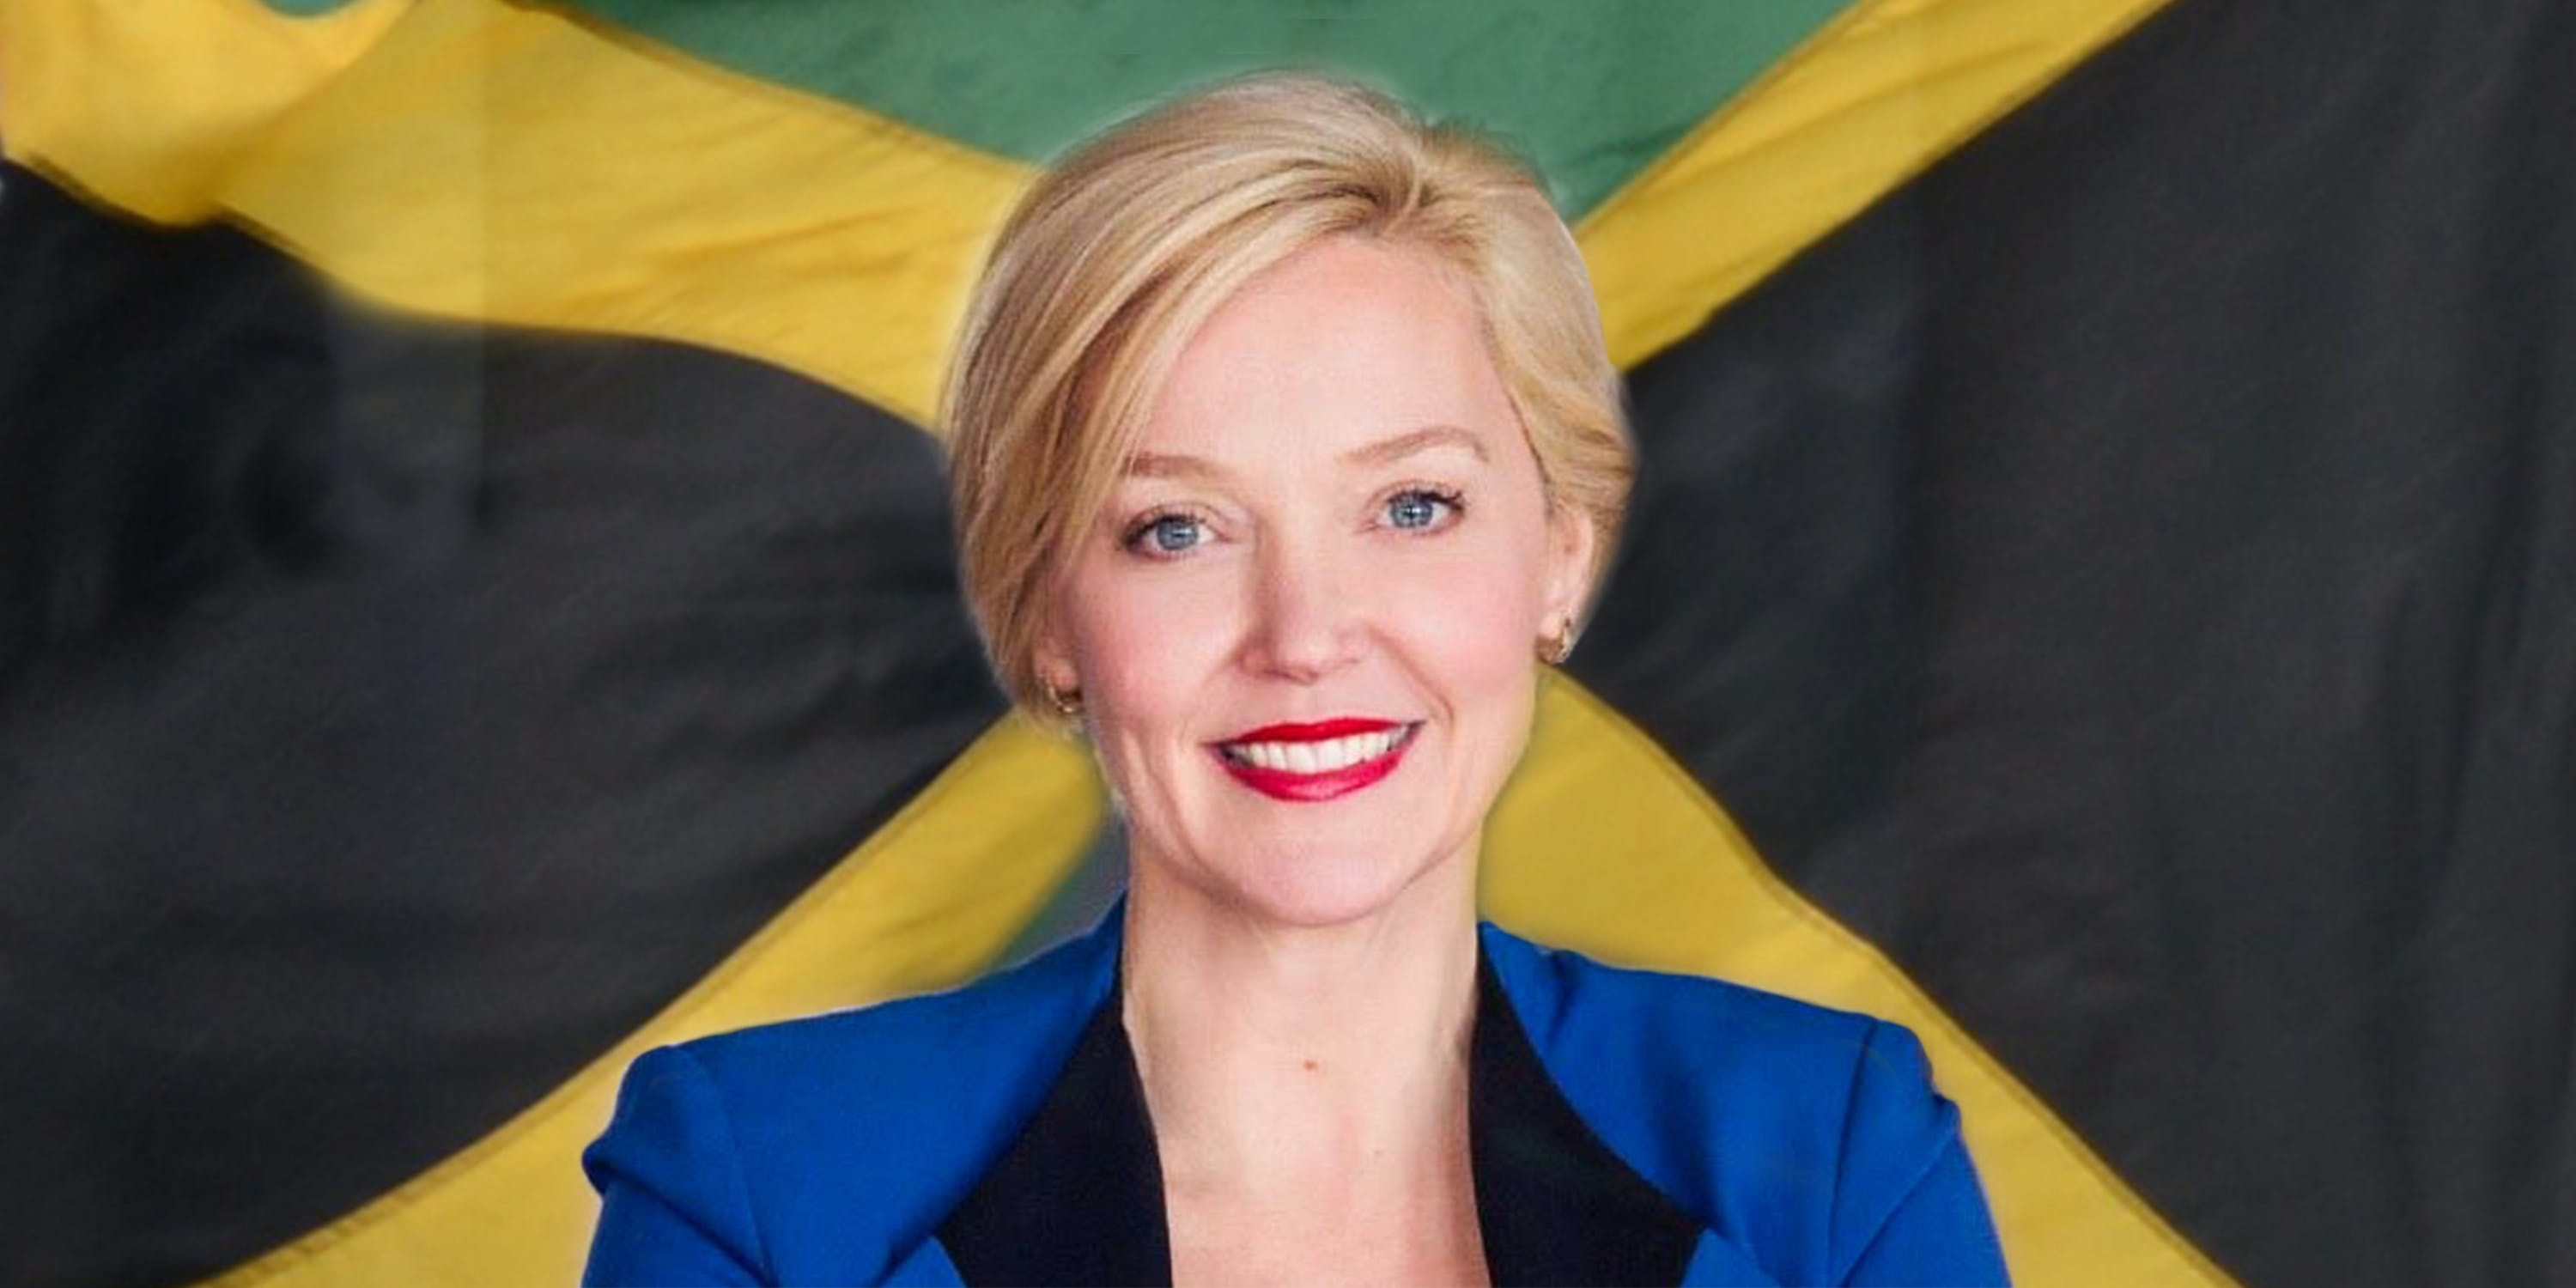 Conservative Party Member Elizabeth Smith-McCrossin Says Weed Will Make Canada As Unproductive As 'Jamaica'